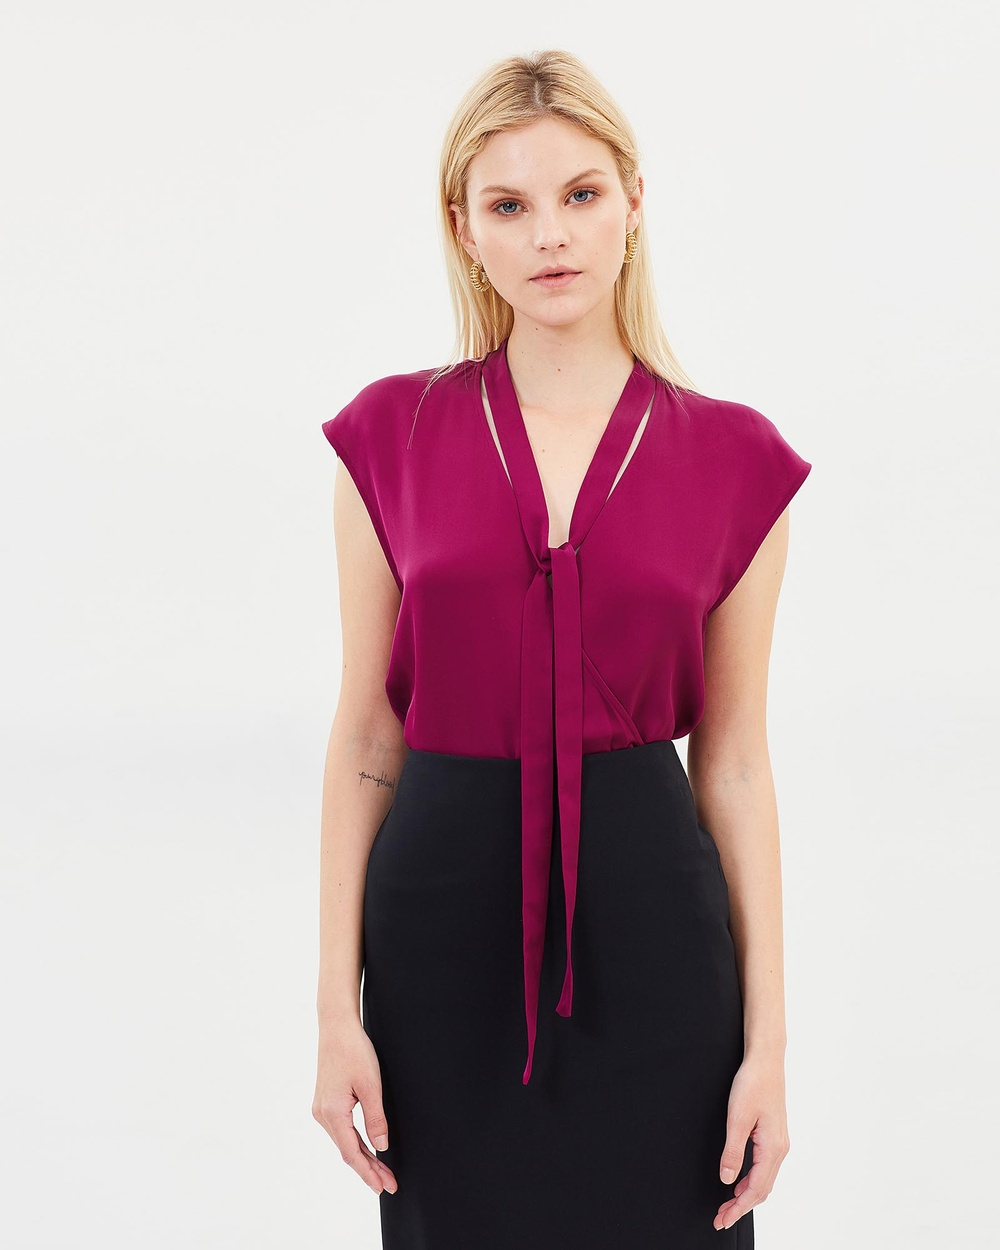 Theory Relaxed Wrap V SL Tops Bright Pink Relaxed Wrap V SL